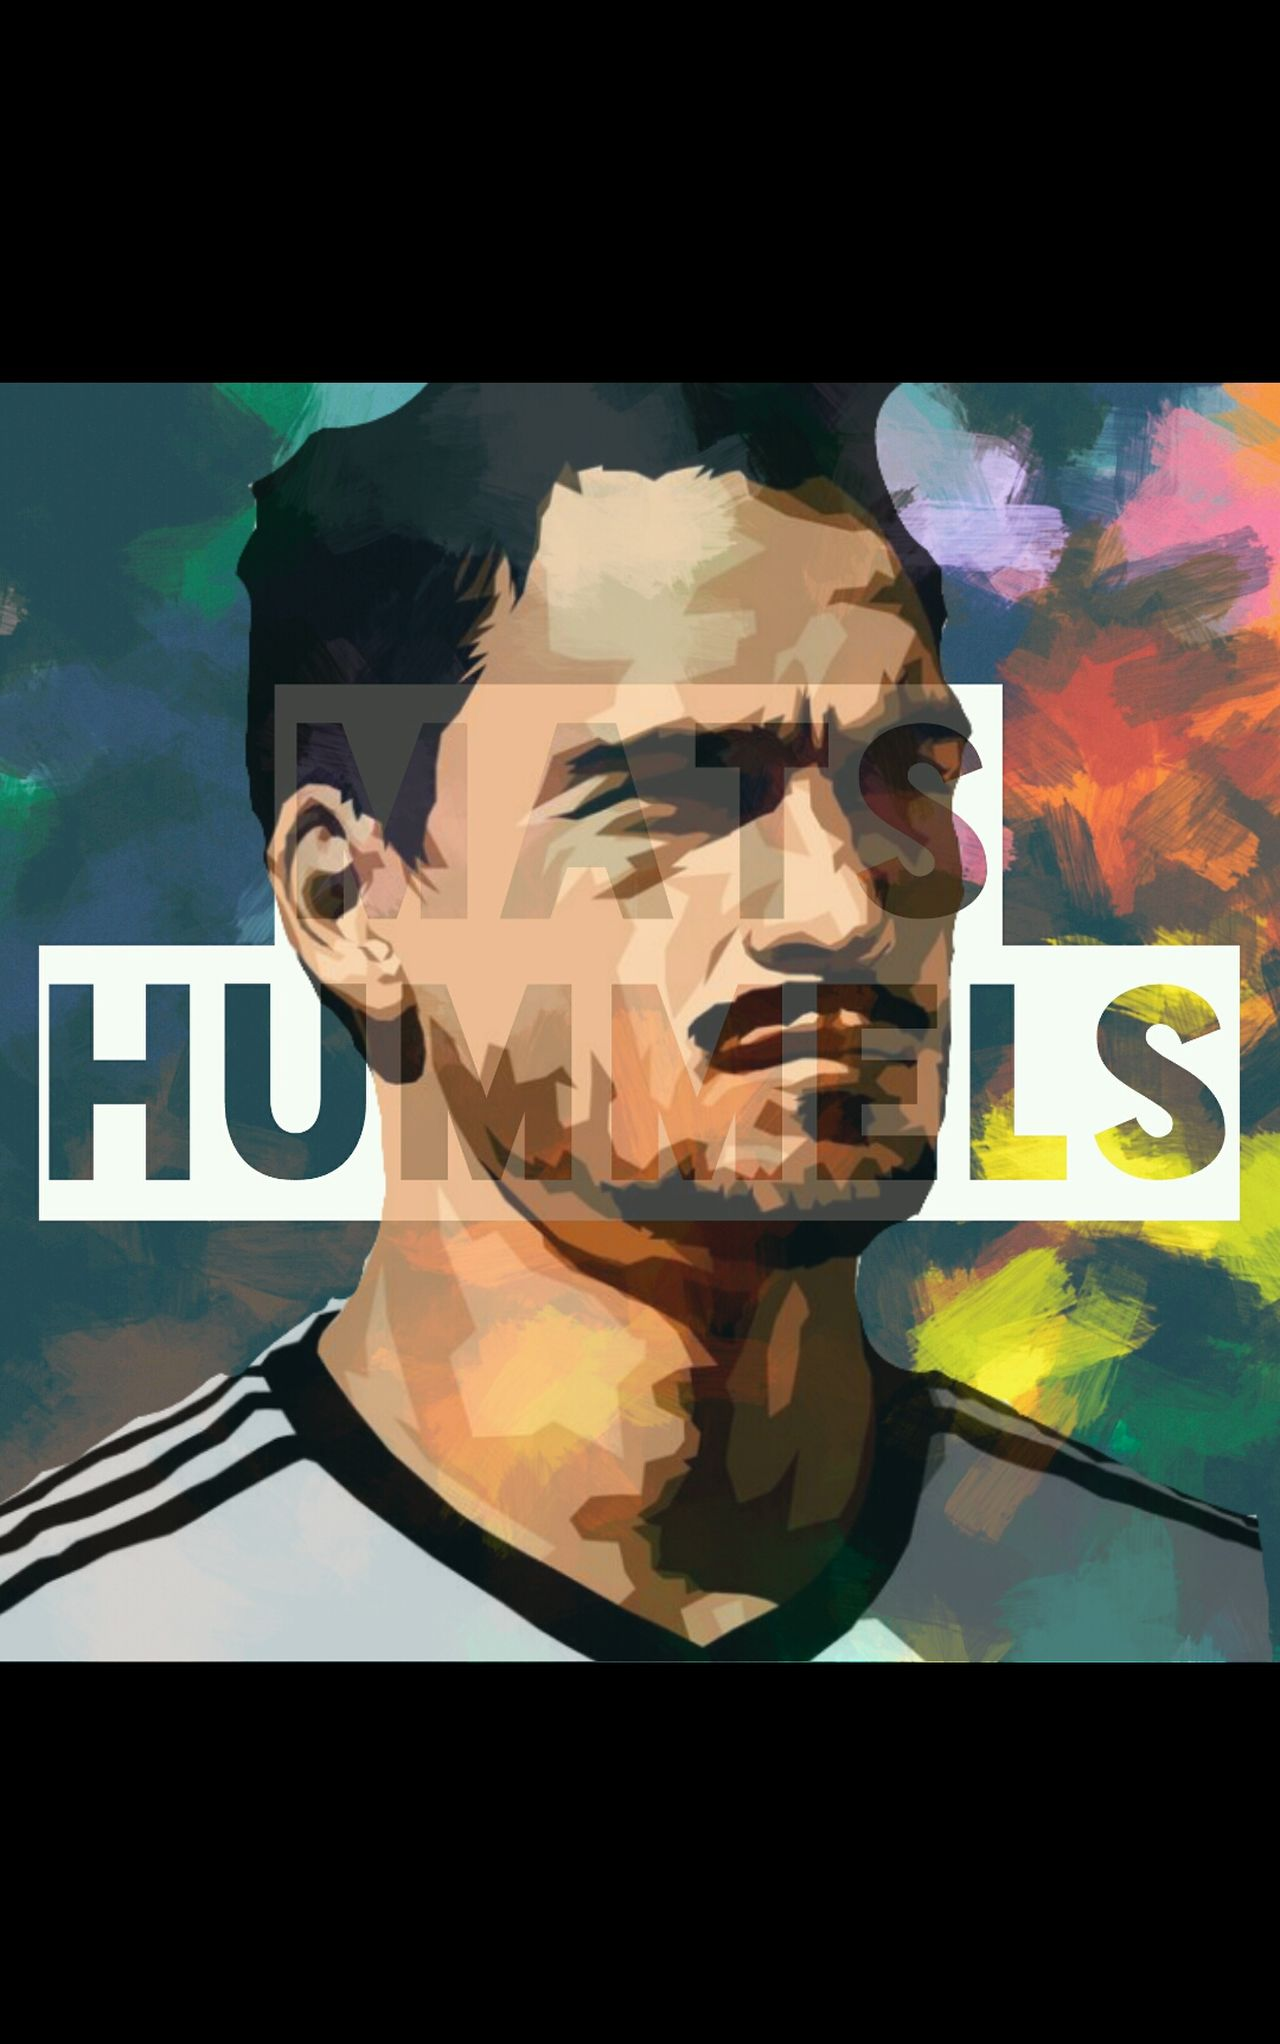 Showcase July Mats Hummels Diemannschaft Germany